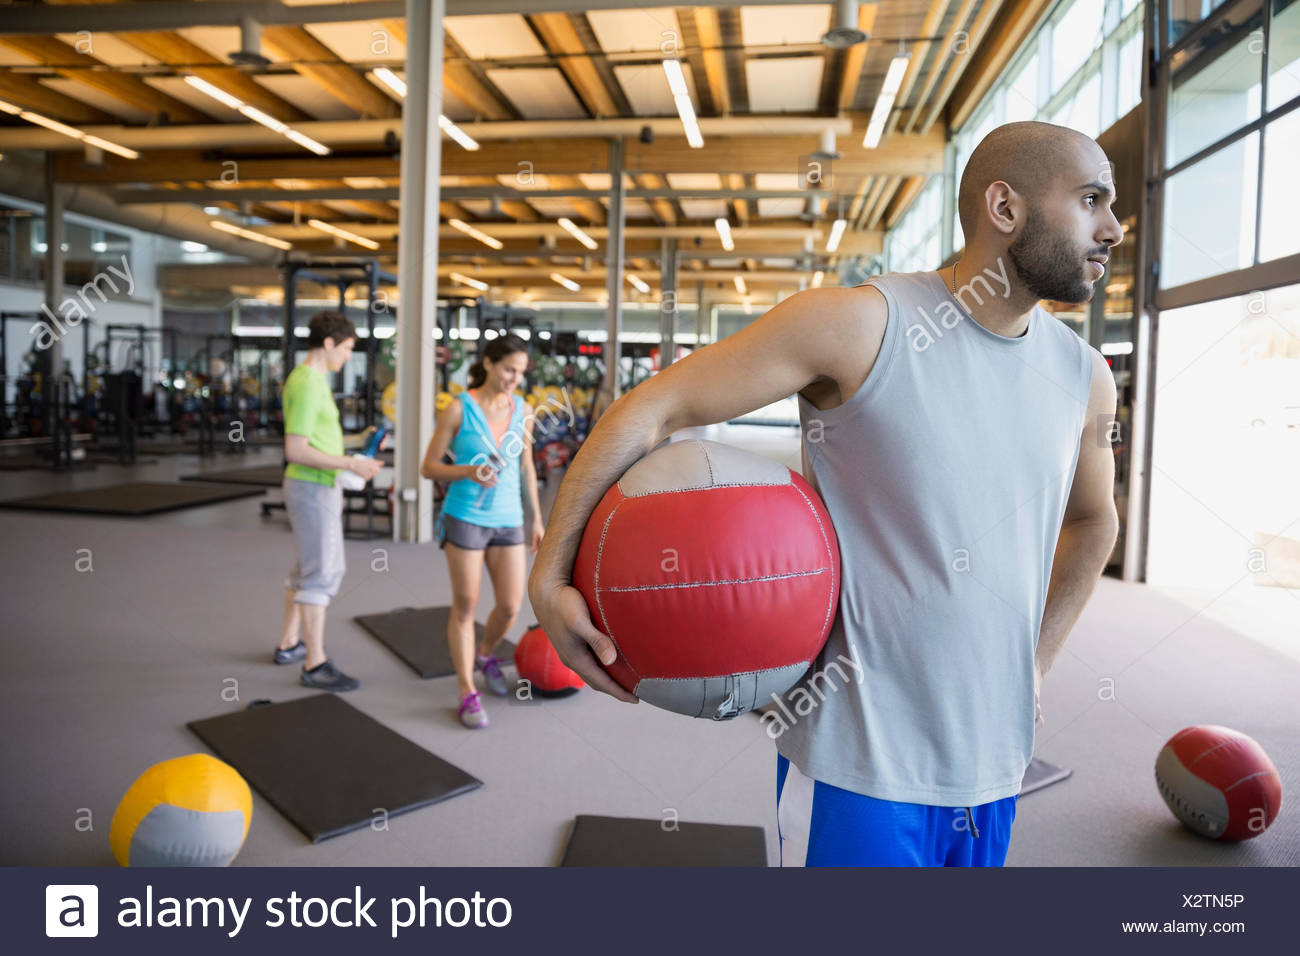 Pensive man holding medicine ball in exercise class - Stock Image